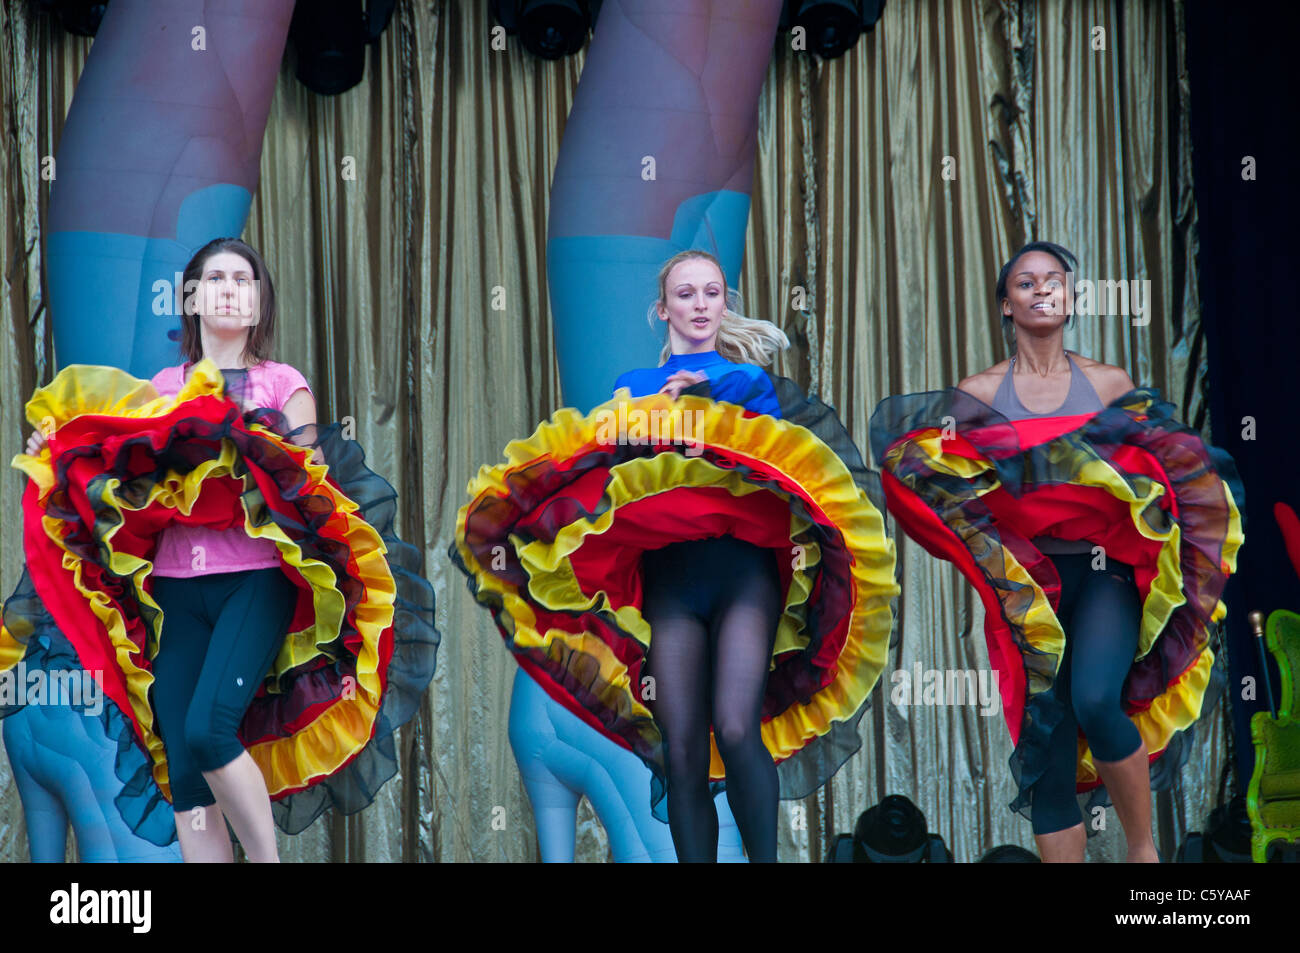 Dance show Just for Laughs comedy festival Montreal - Stock Image